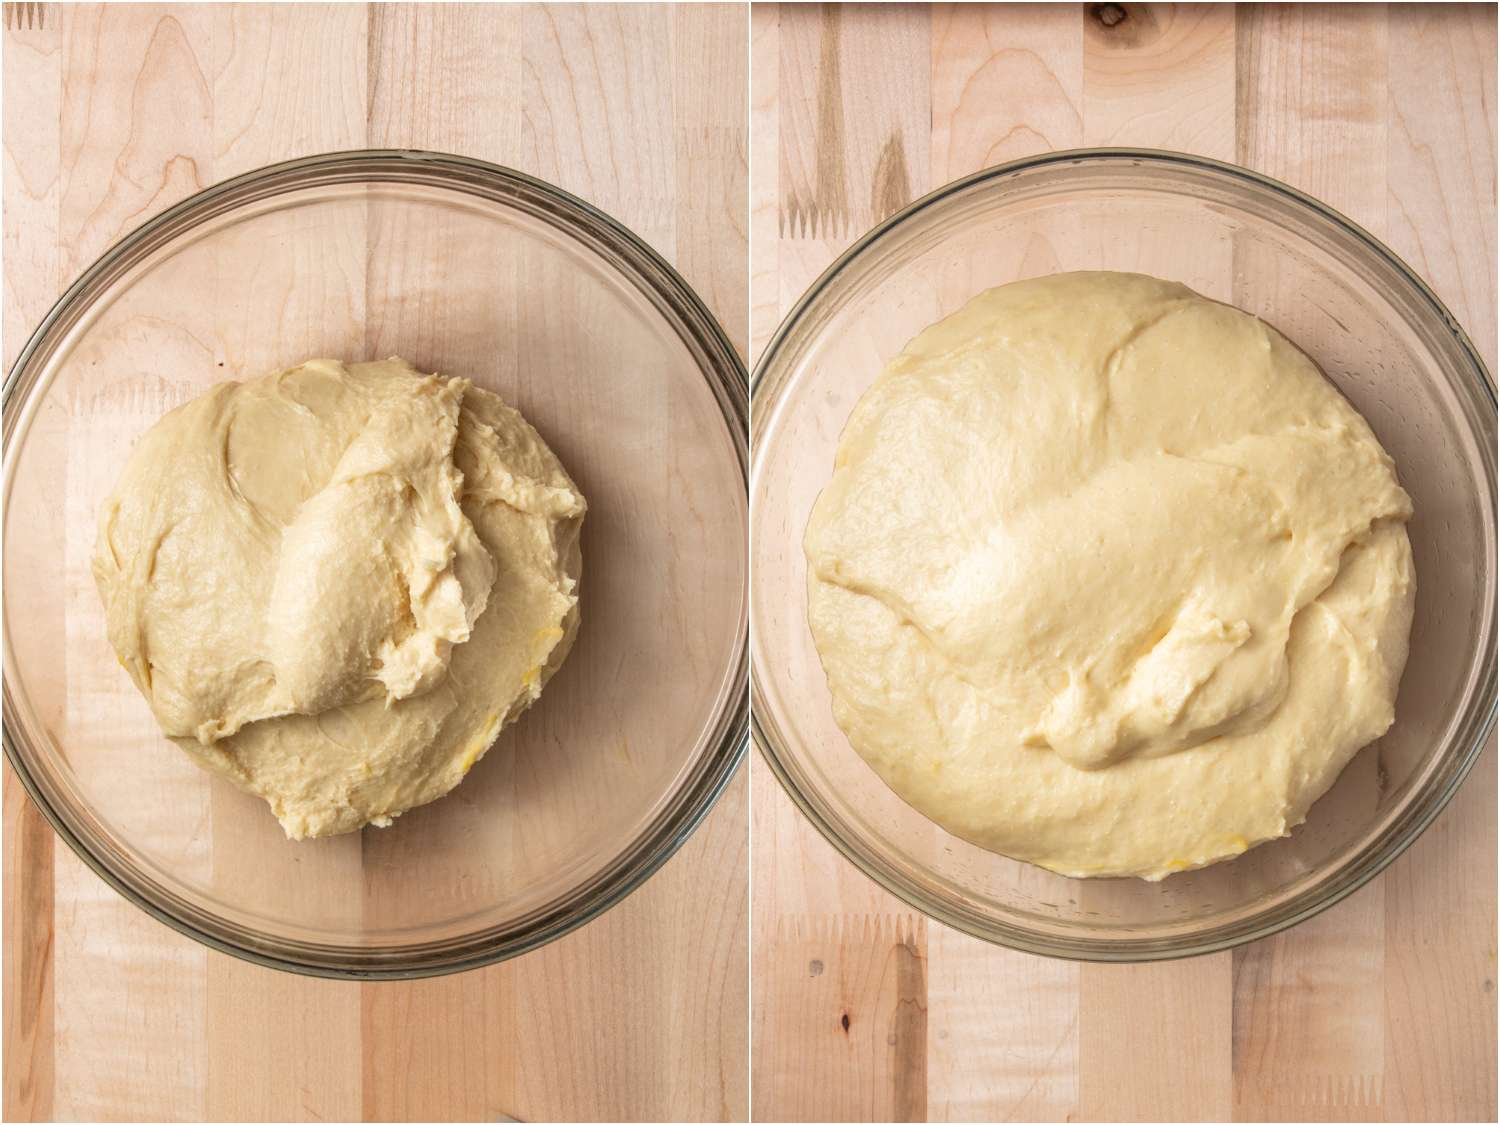 before and after of pandesal dough after resting and doubling in size